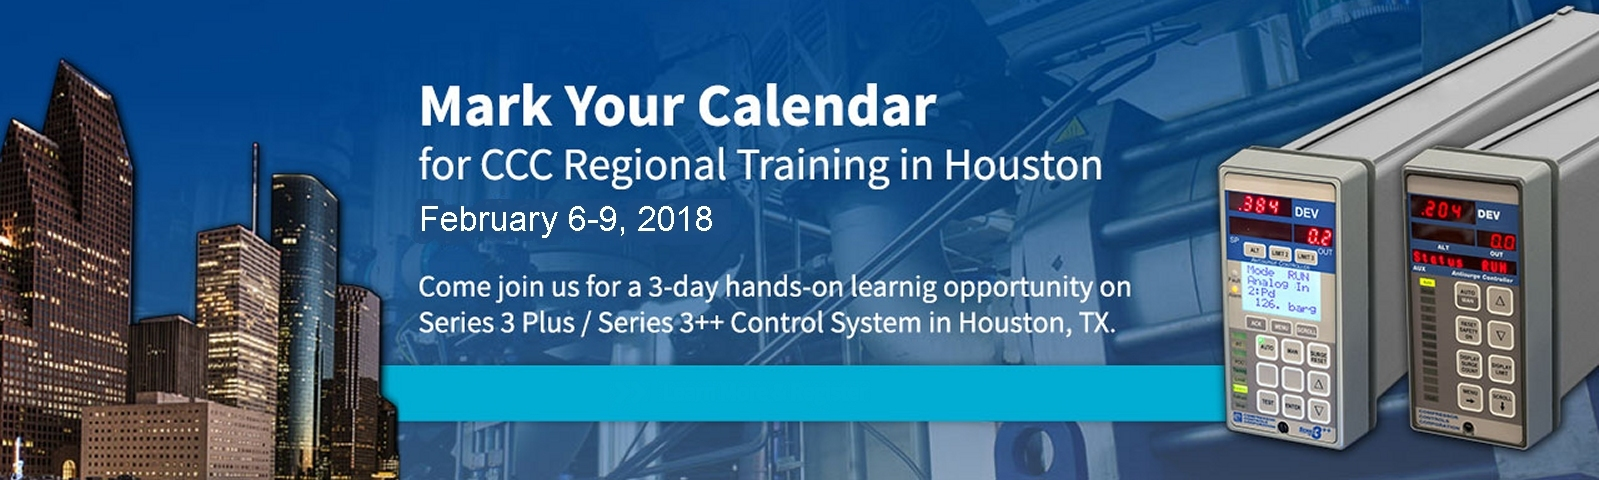 2018 Houston S3+/++ Regional Training   <a  data-cke-saved-href='https://learning.cccglobal.com/ProductDetails.aspx?ProductID=253' href='https://learning.cccglobal.com/ProductDetails.aspx?ProductID=253'>Register Now</a>